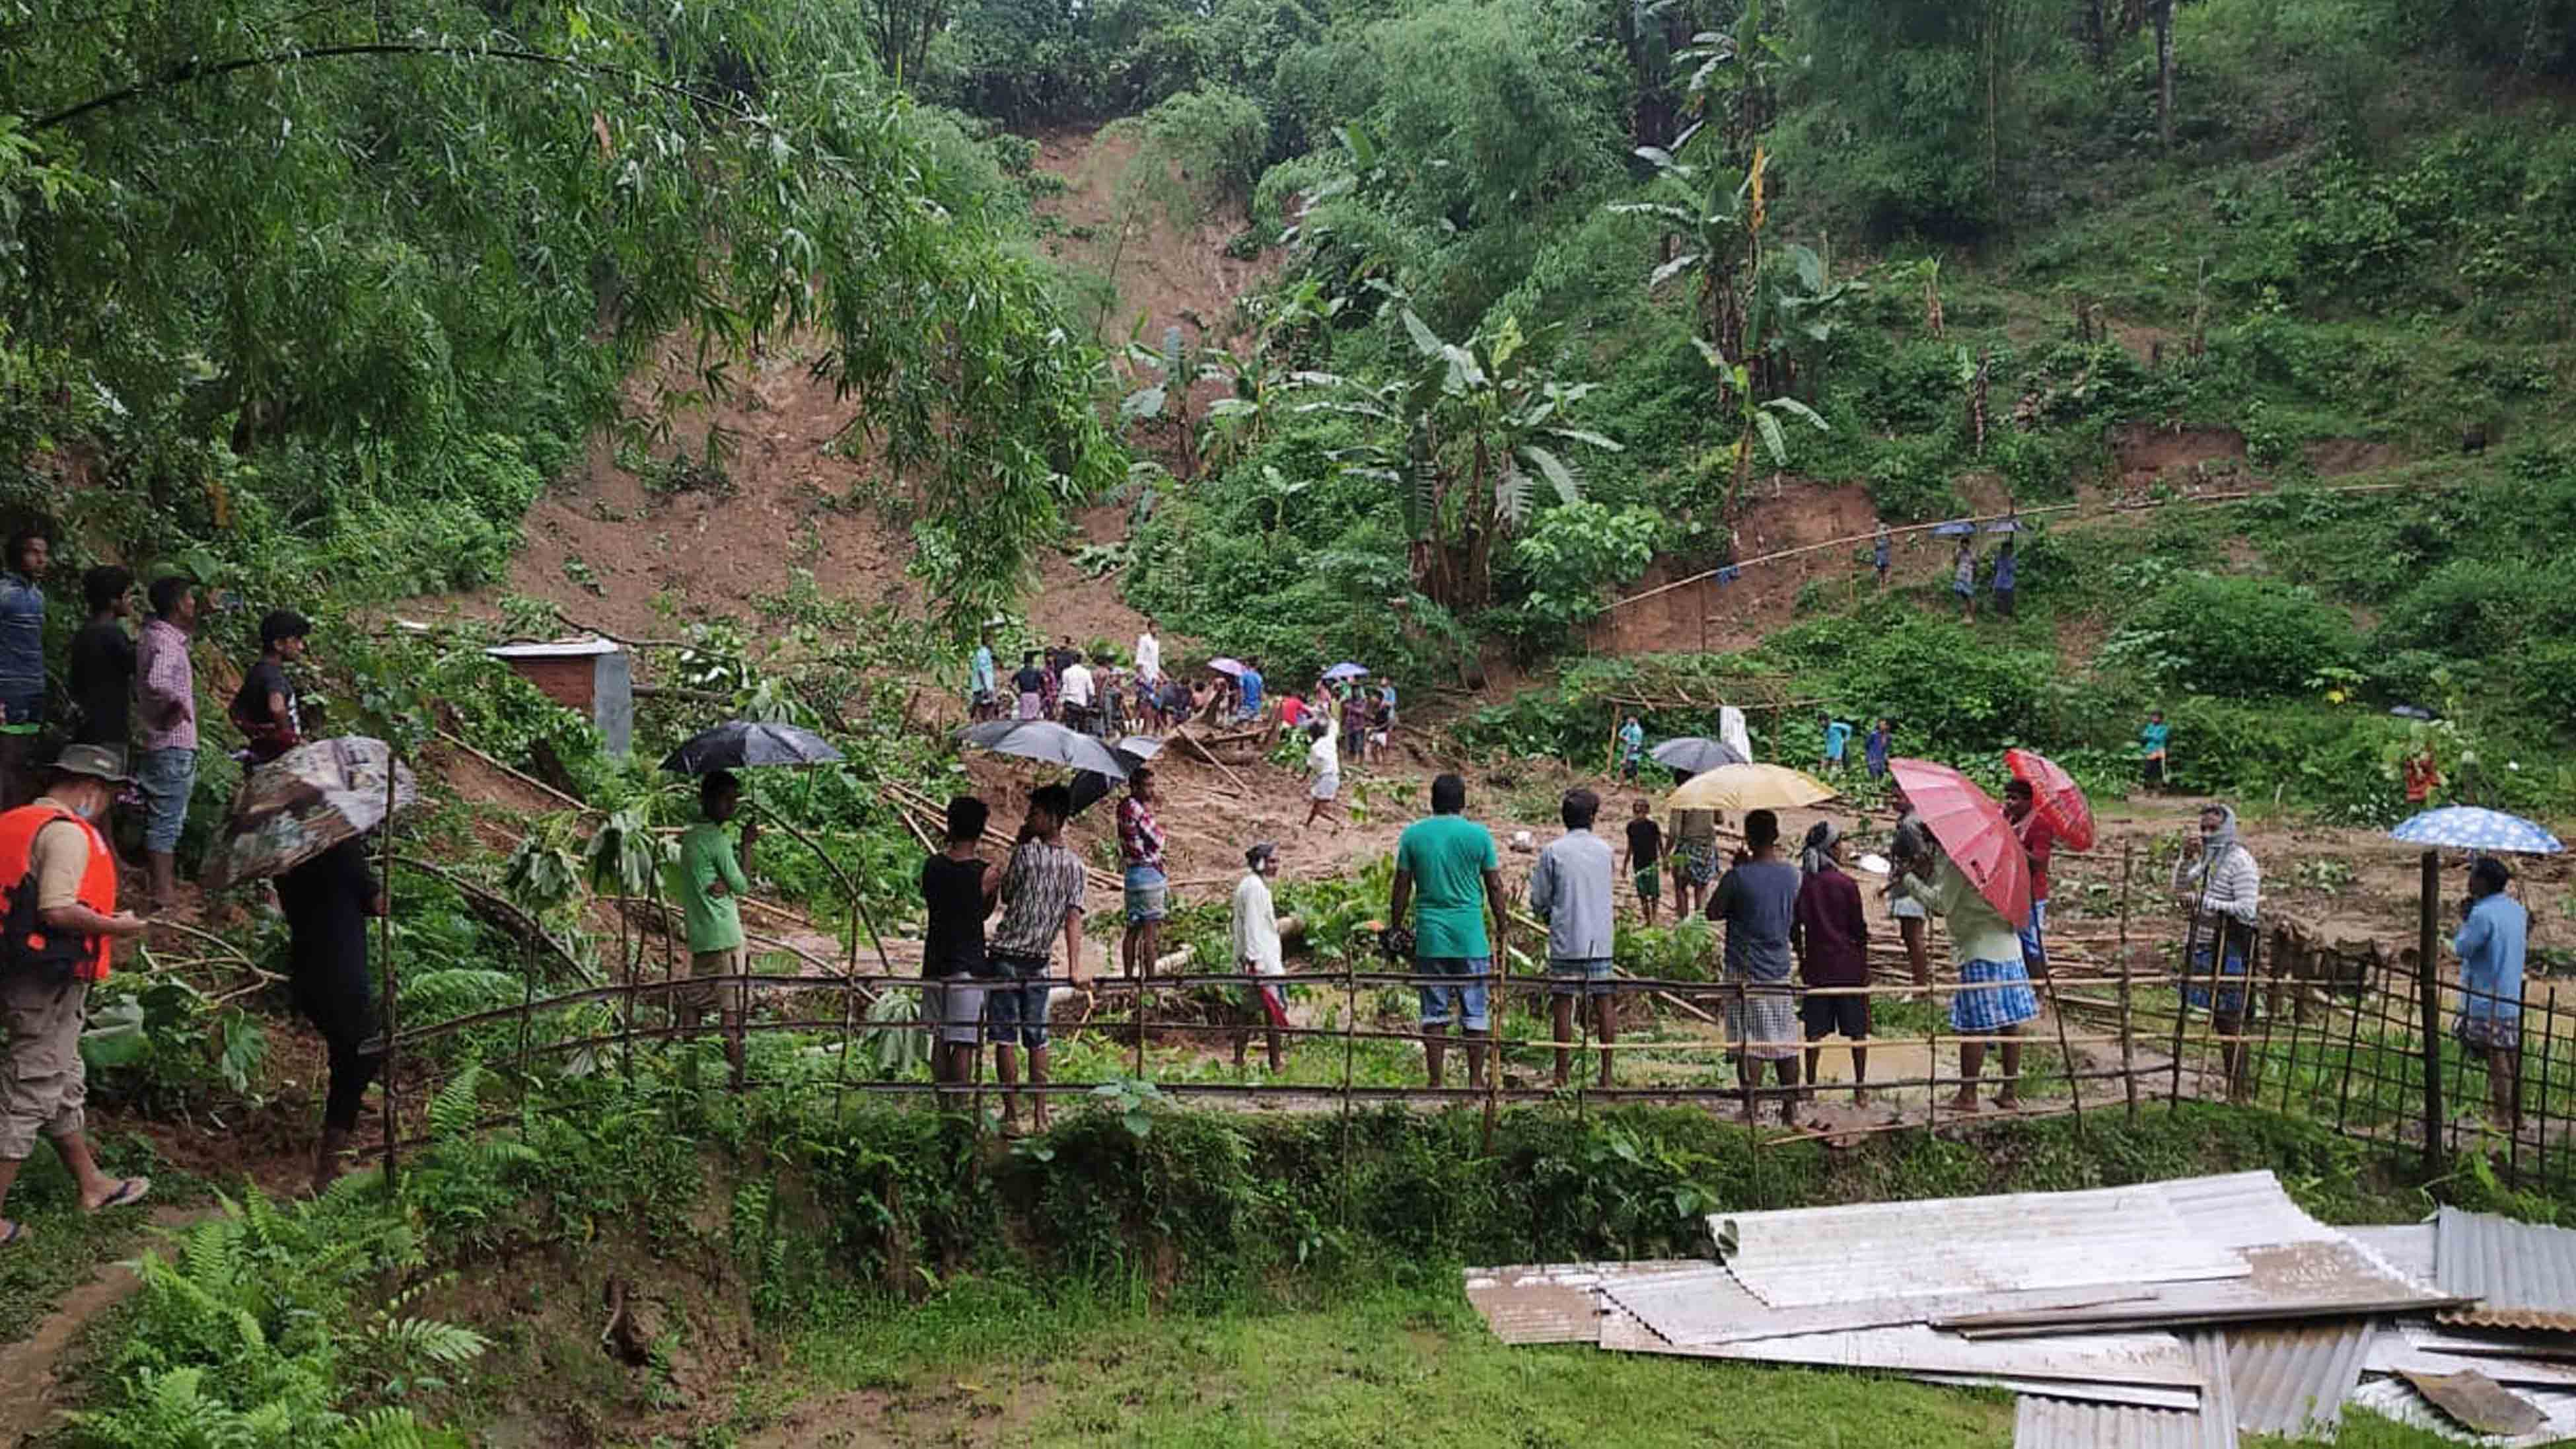 Landslides in Northeast India Kill at Least 20 People